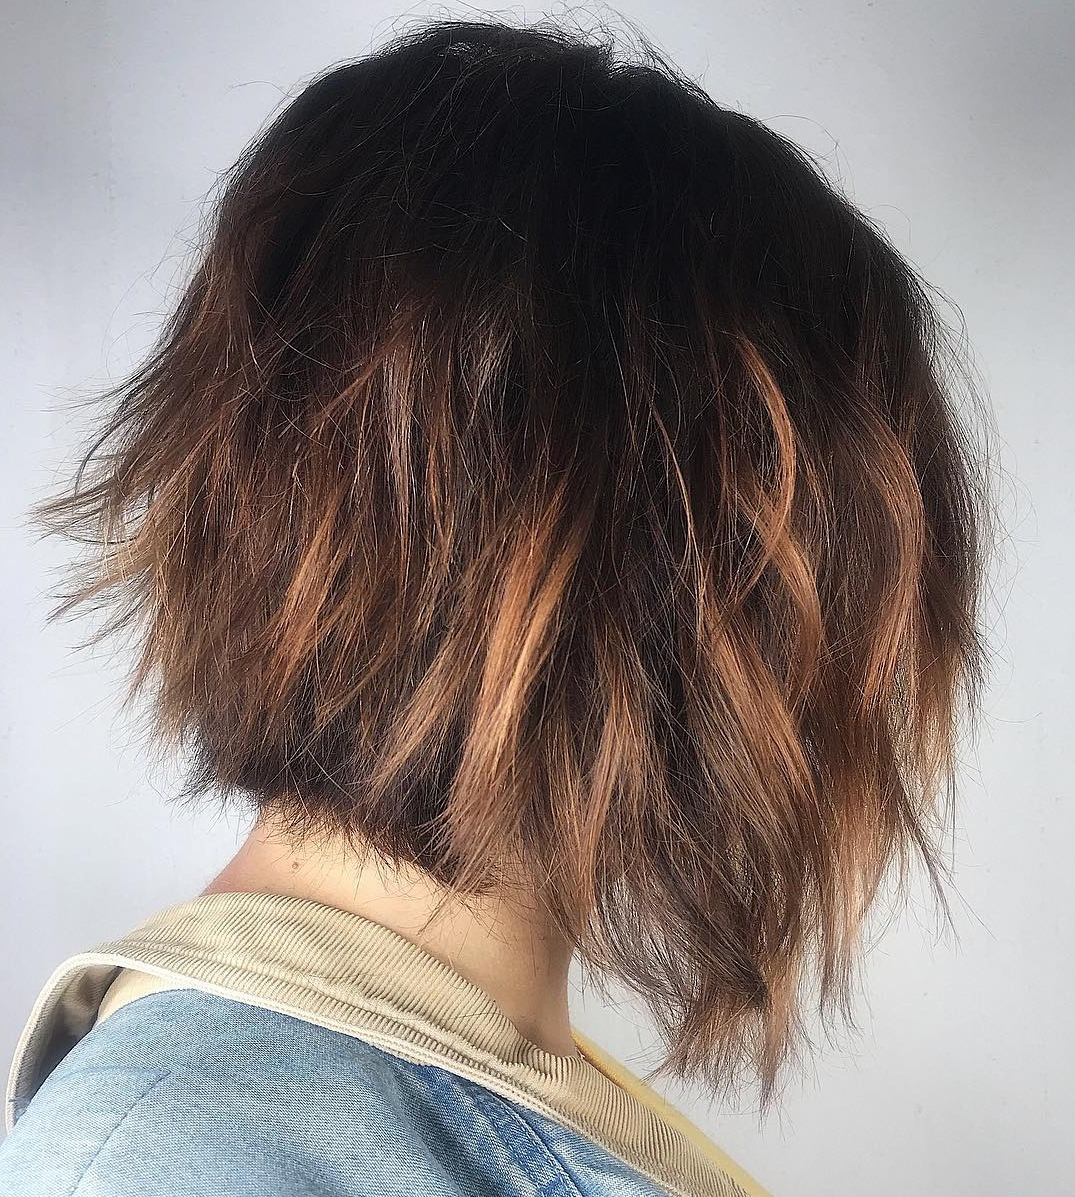 45 Short Hairstyles For Fine Hair To Rock In 2019 With Regard To Inverted Caramel Bob Hairstyles With Wavy Layers (View 10 of 20)